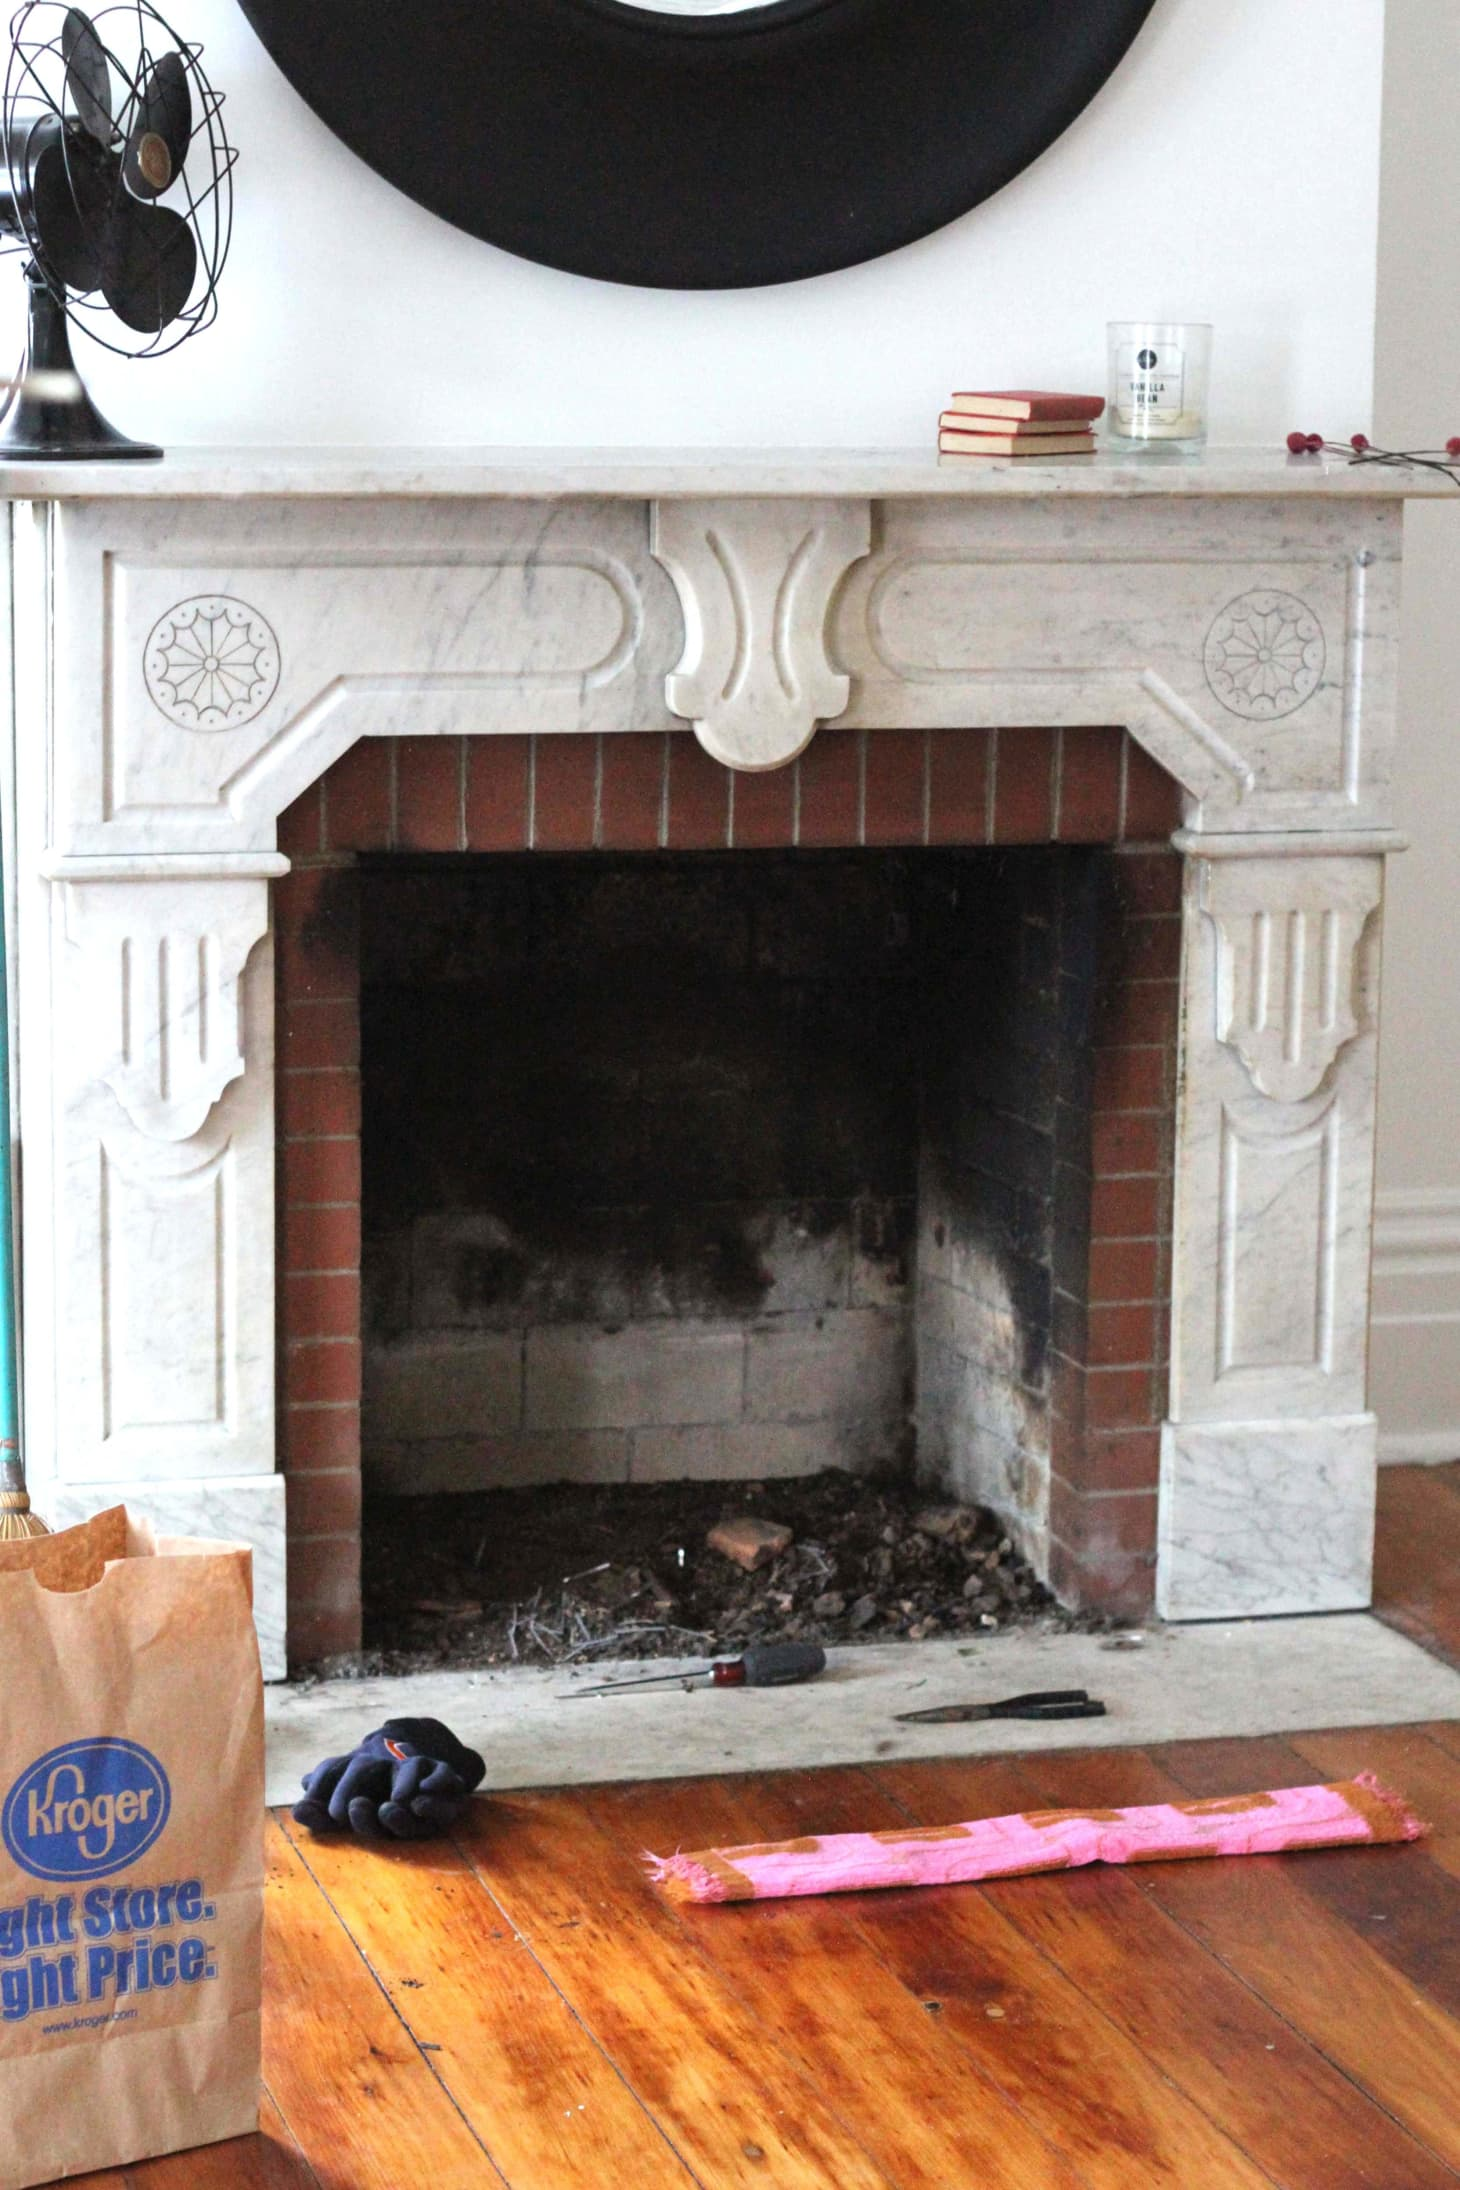 How To Clean a Brick Fireplace with Natural Cleaners